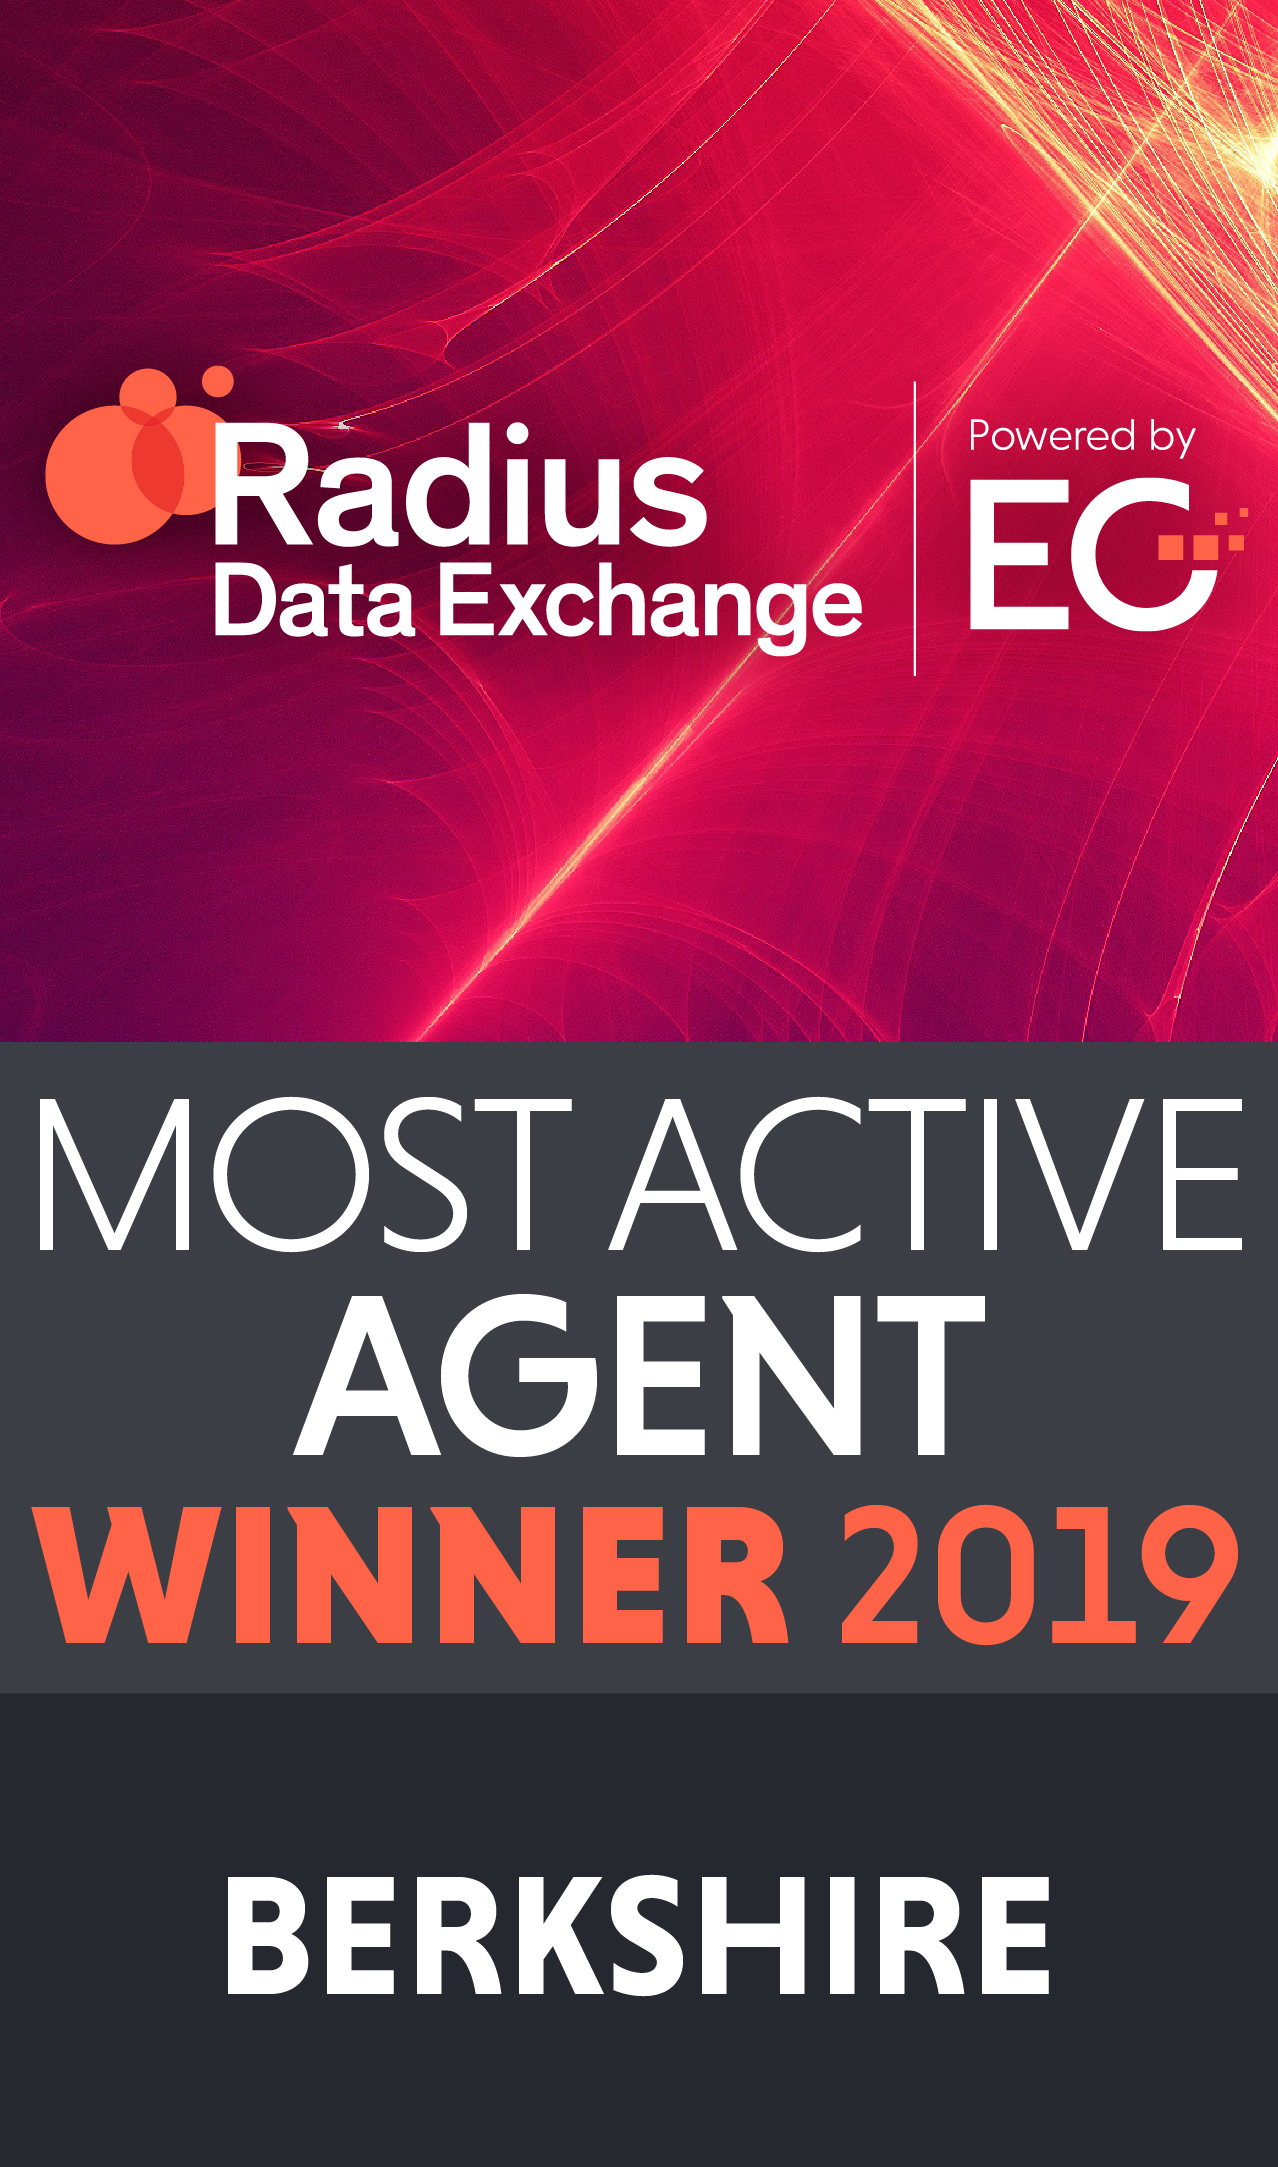 Most Active Agent winner 2019